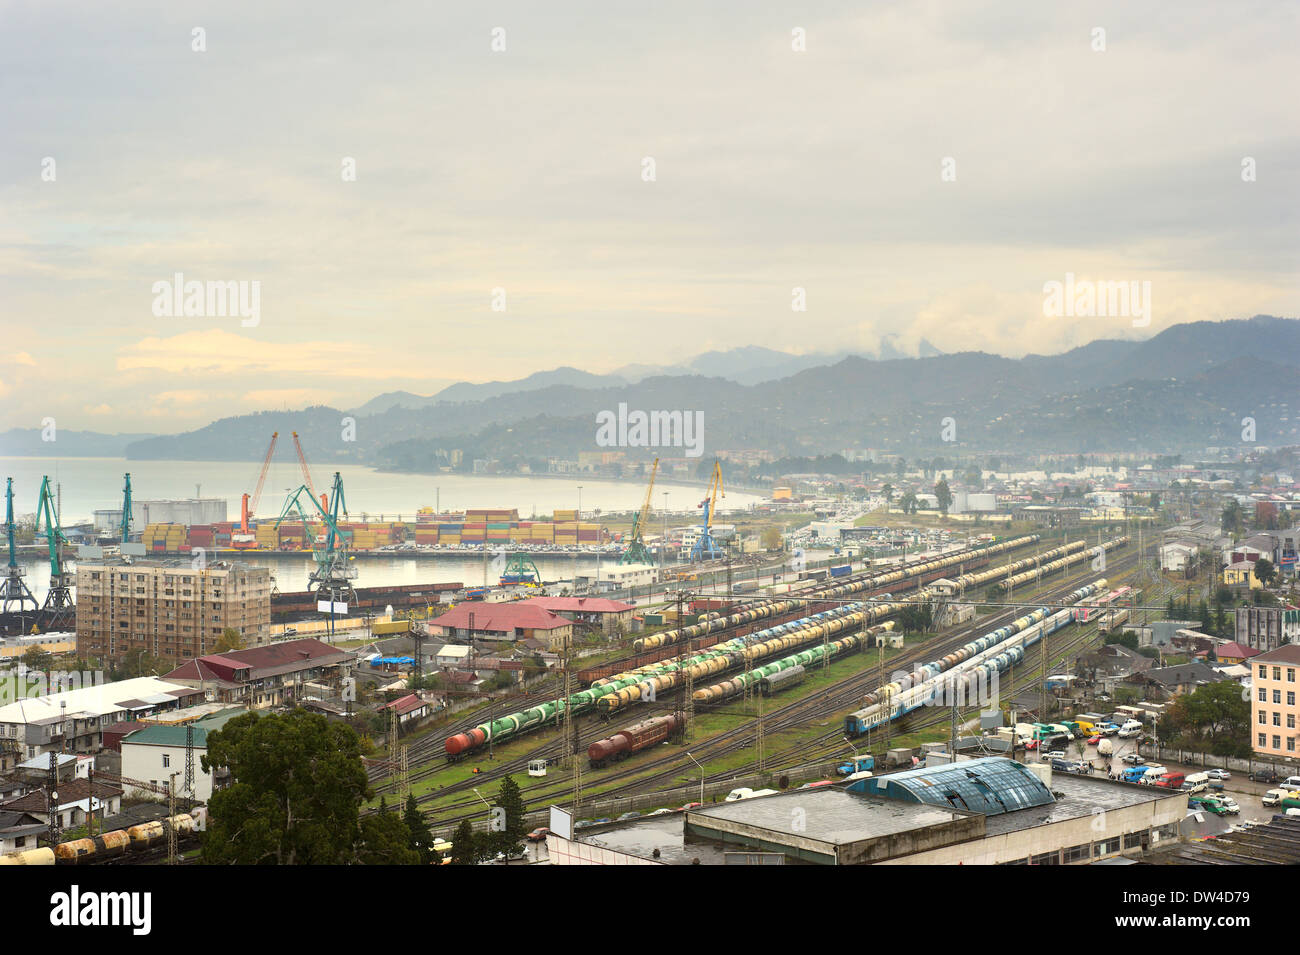 Panoramic view of Batumi port and railway station in Georgia - Stock Image